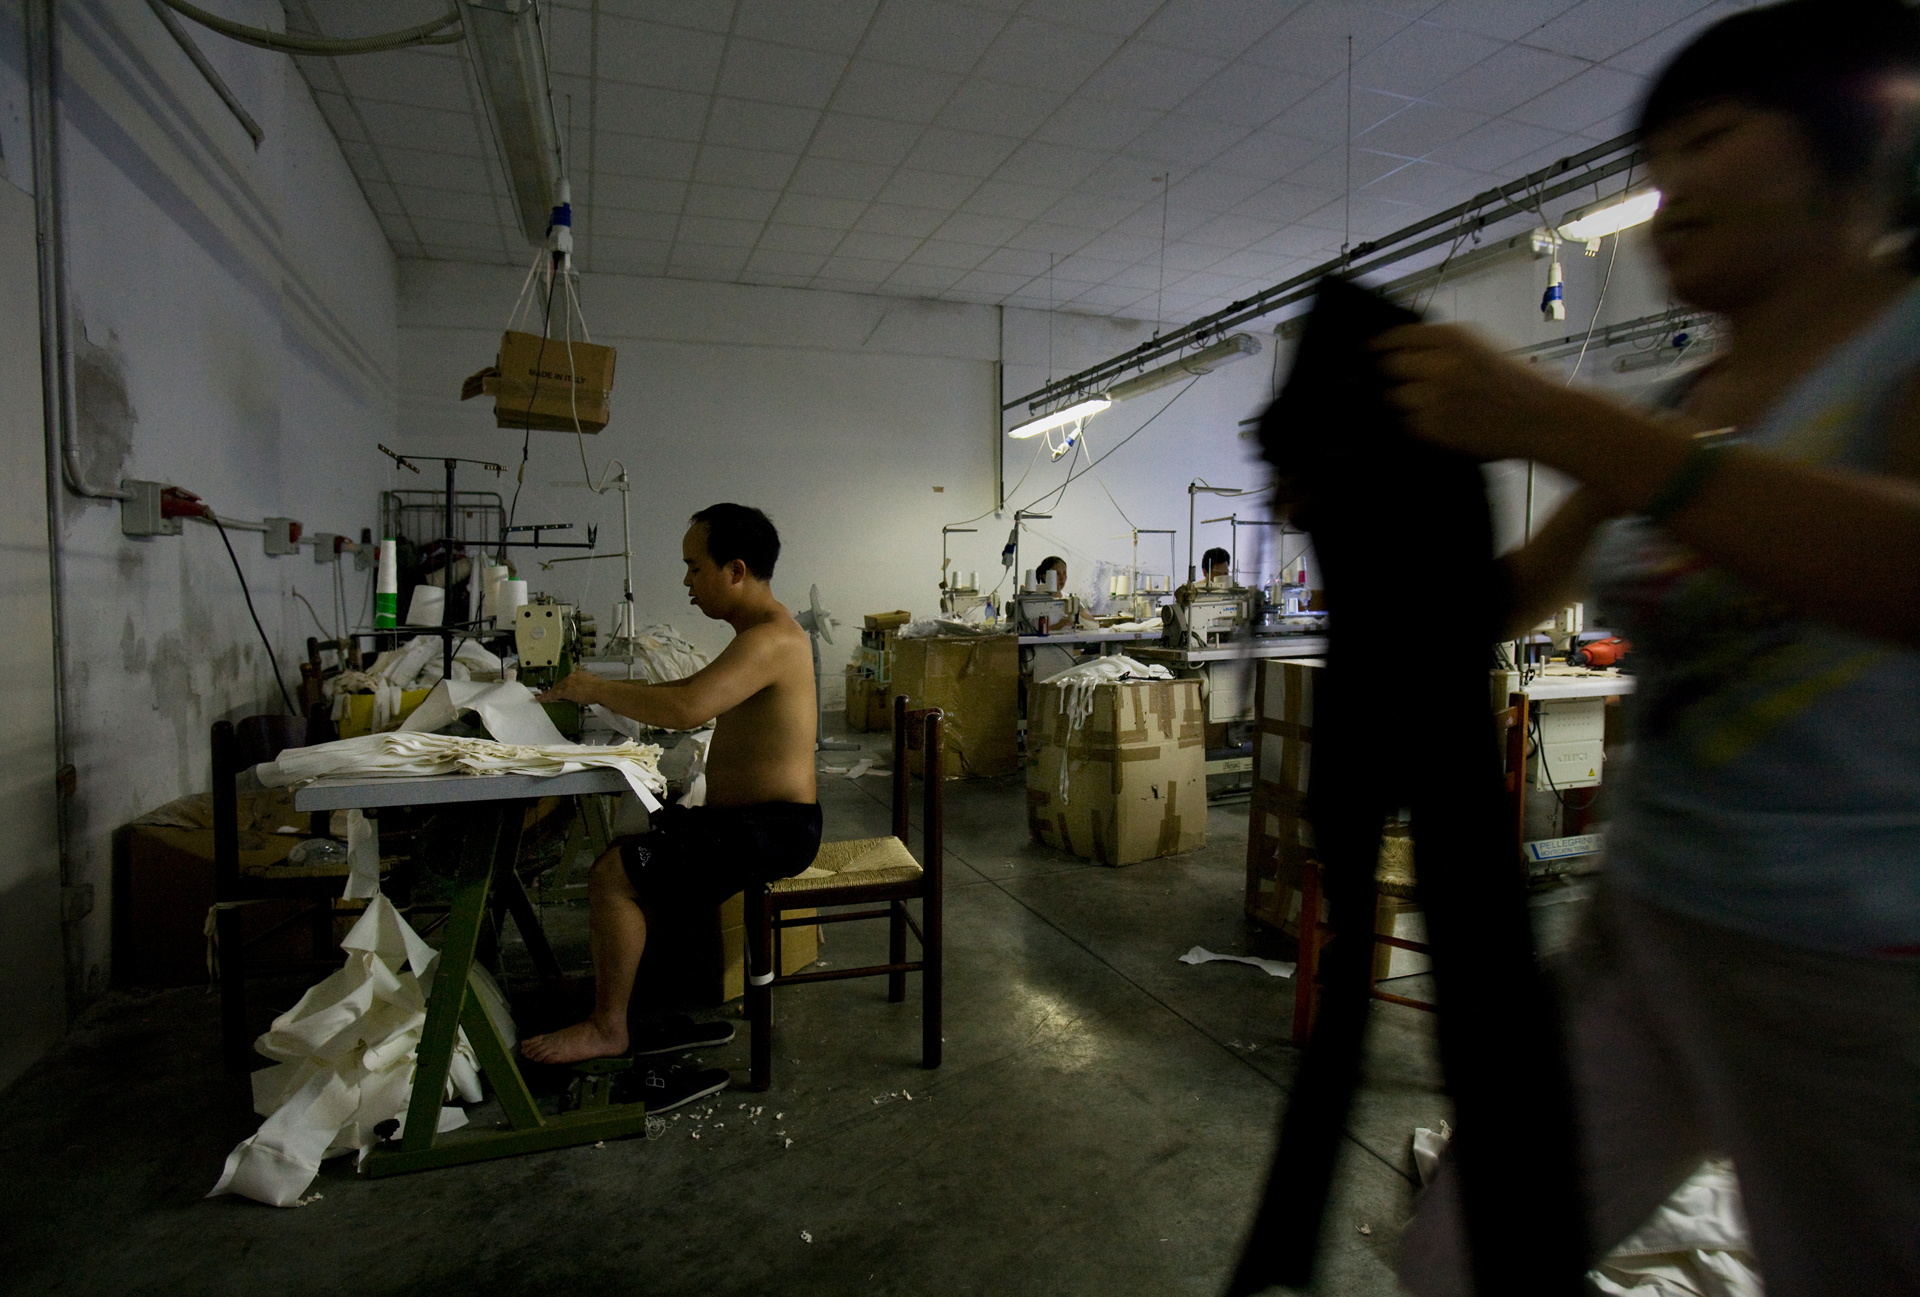 """The success of the """"Chinese Pronto Moda"""", or """"ready-to-wear"""", factories is based on a disregard for standard labor laws. Employees, often including families with young children, live communally in factory warehouses, often working round the clock until piece orders are filled."""